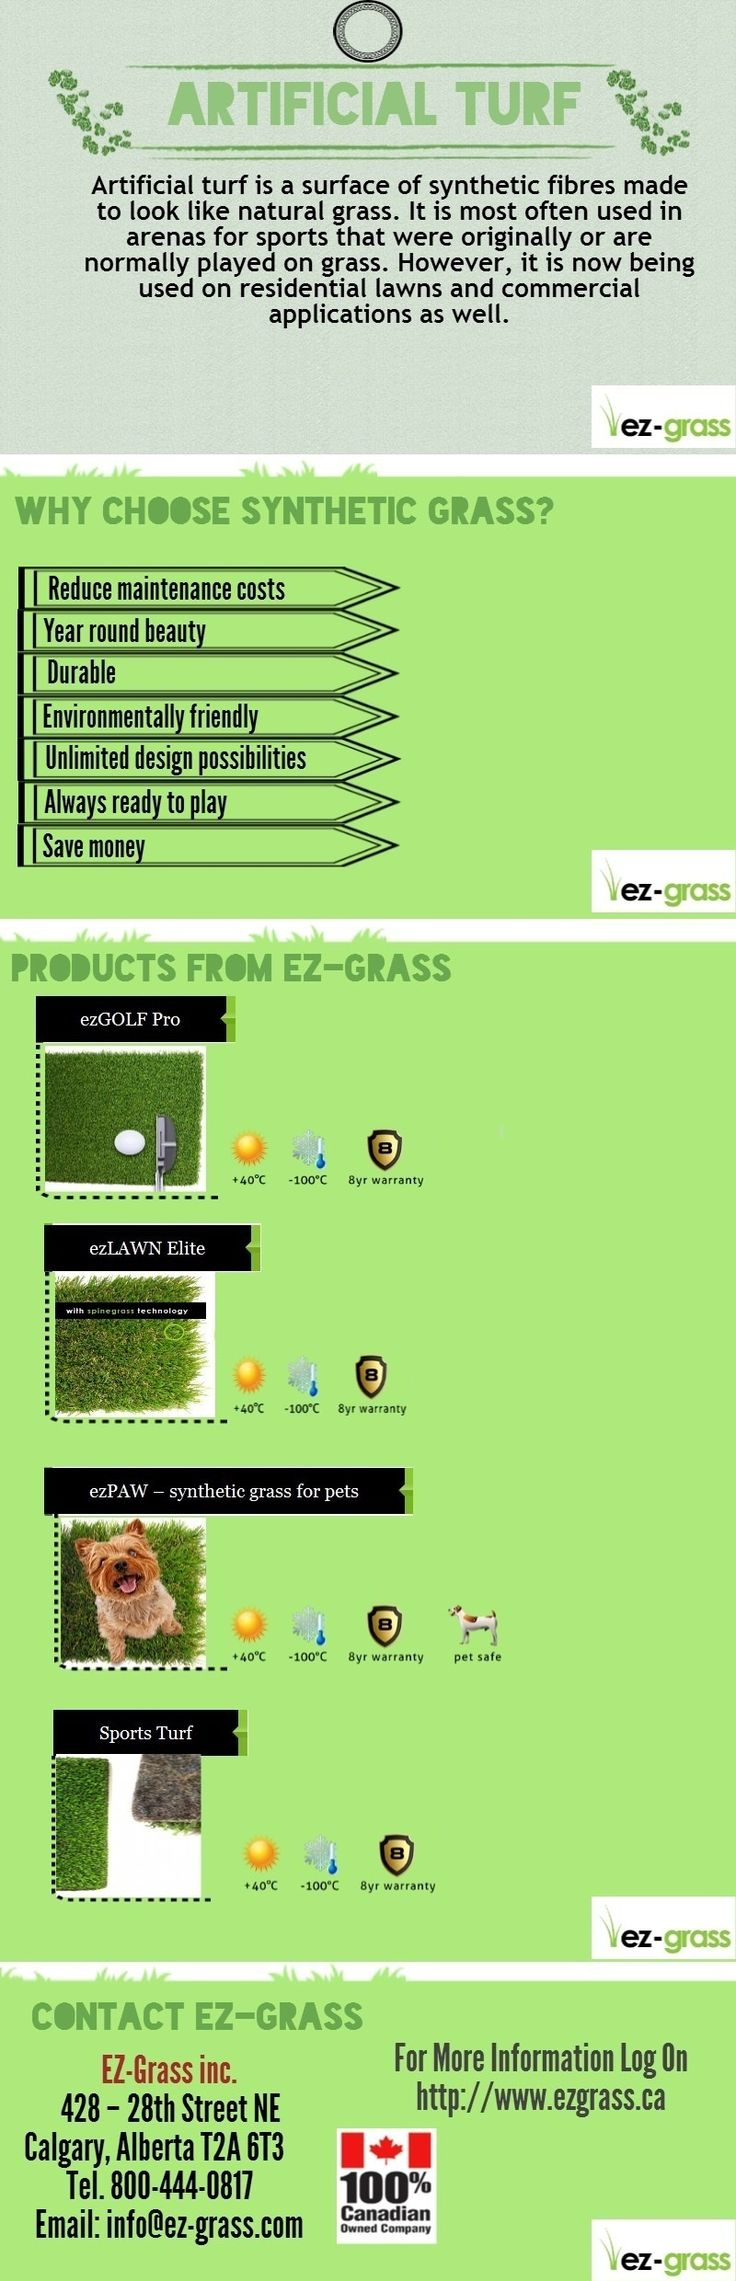 Artificial turf is a surface of synthetic fibres made to look natural grass.